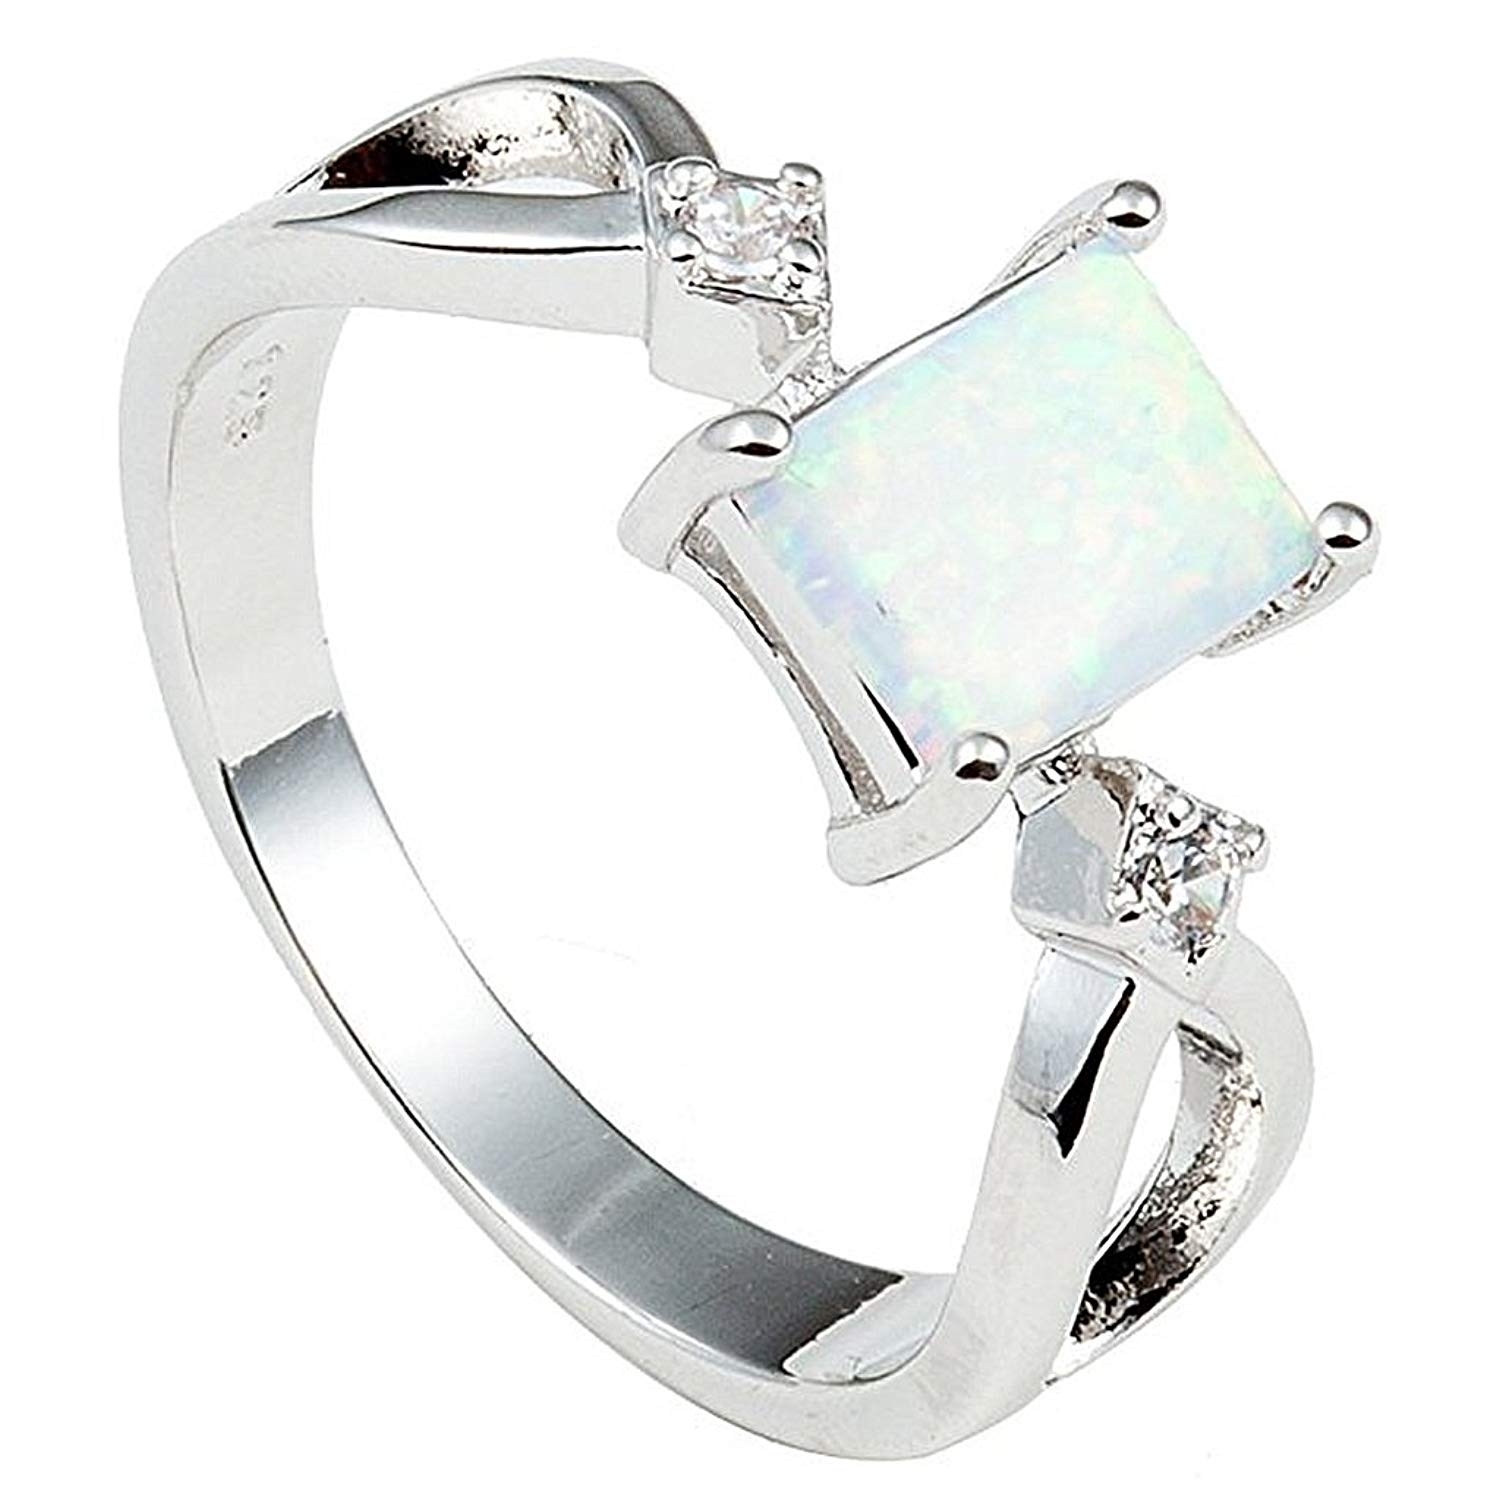 Jude Jewelers Princess Cut Opal Wedding Engagement Ring Anniversary Propose Promise Statement